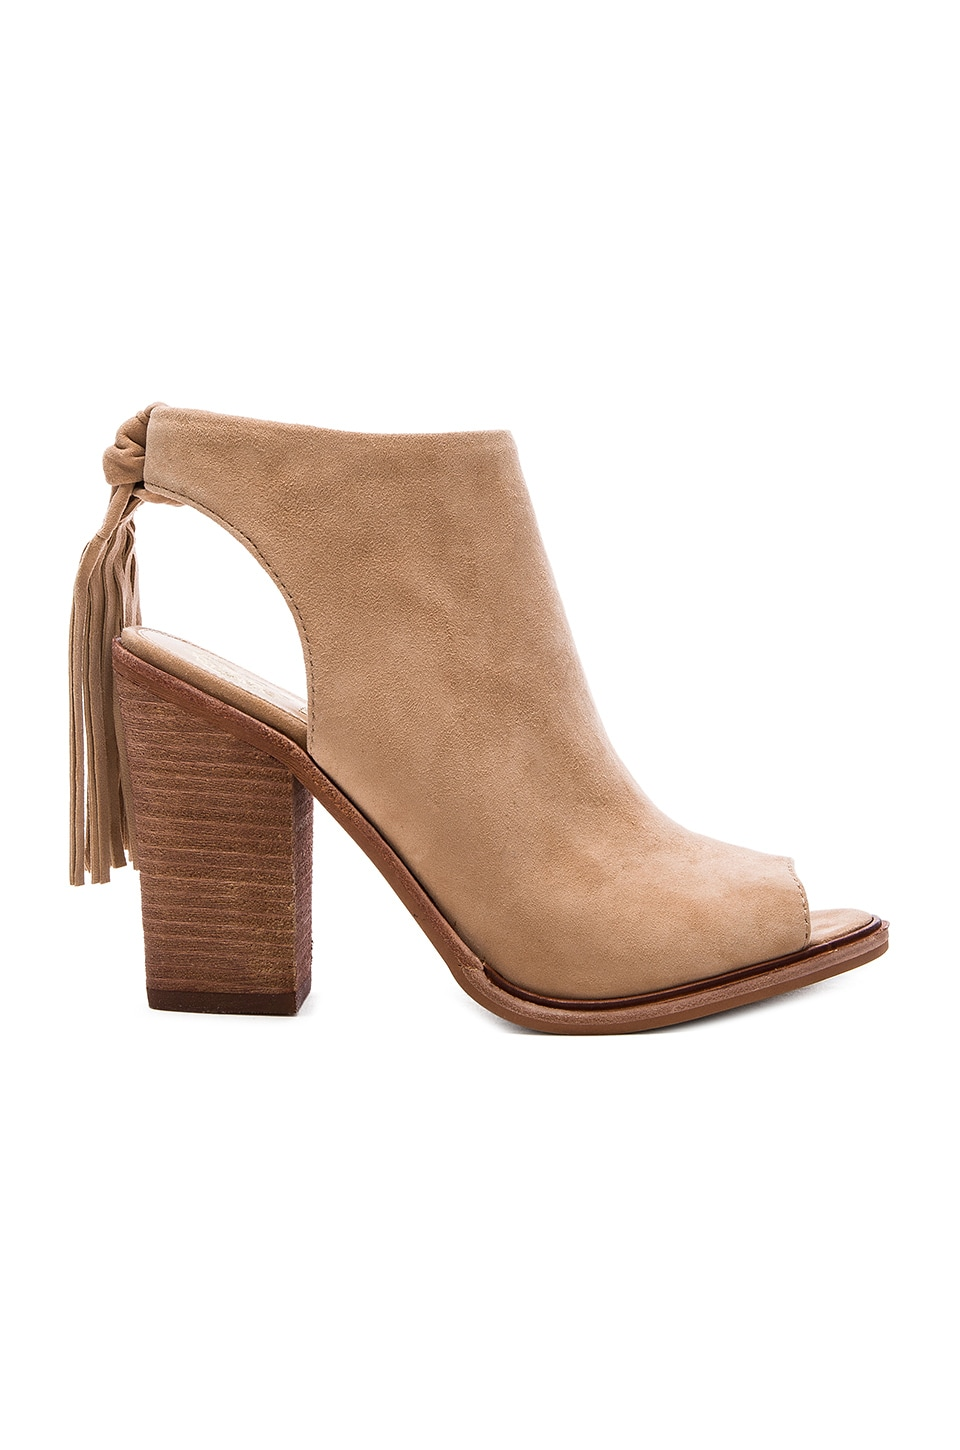 Vince Camuto Kyleena Booties in Sandy Lane